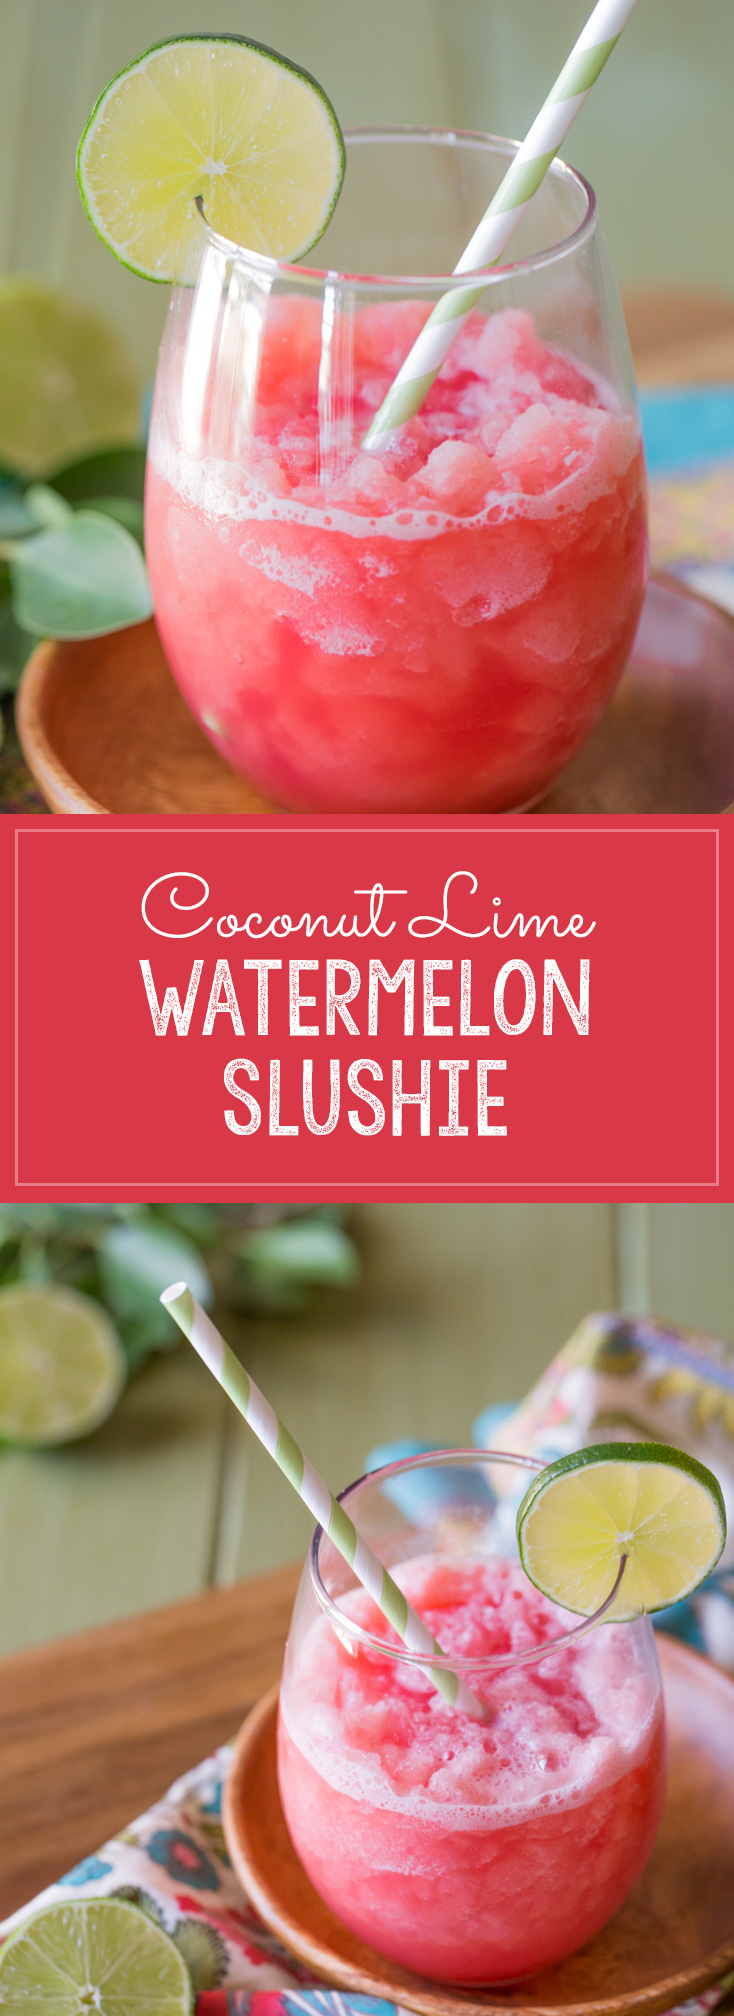 The perfect way to cool down this summer - so easy and super refreshing!